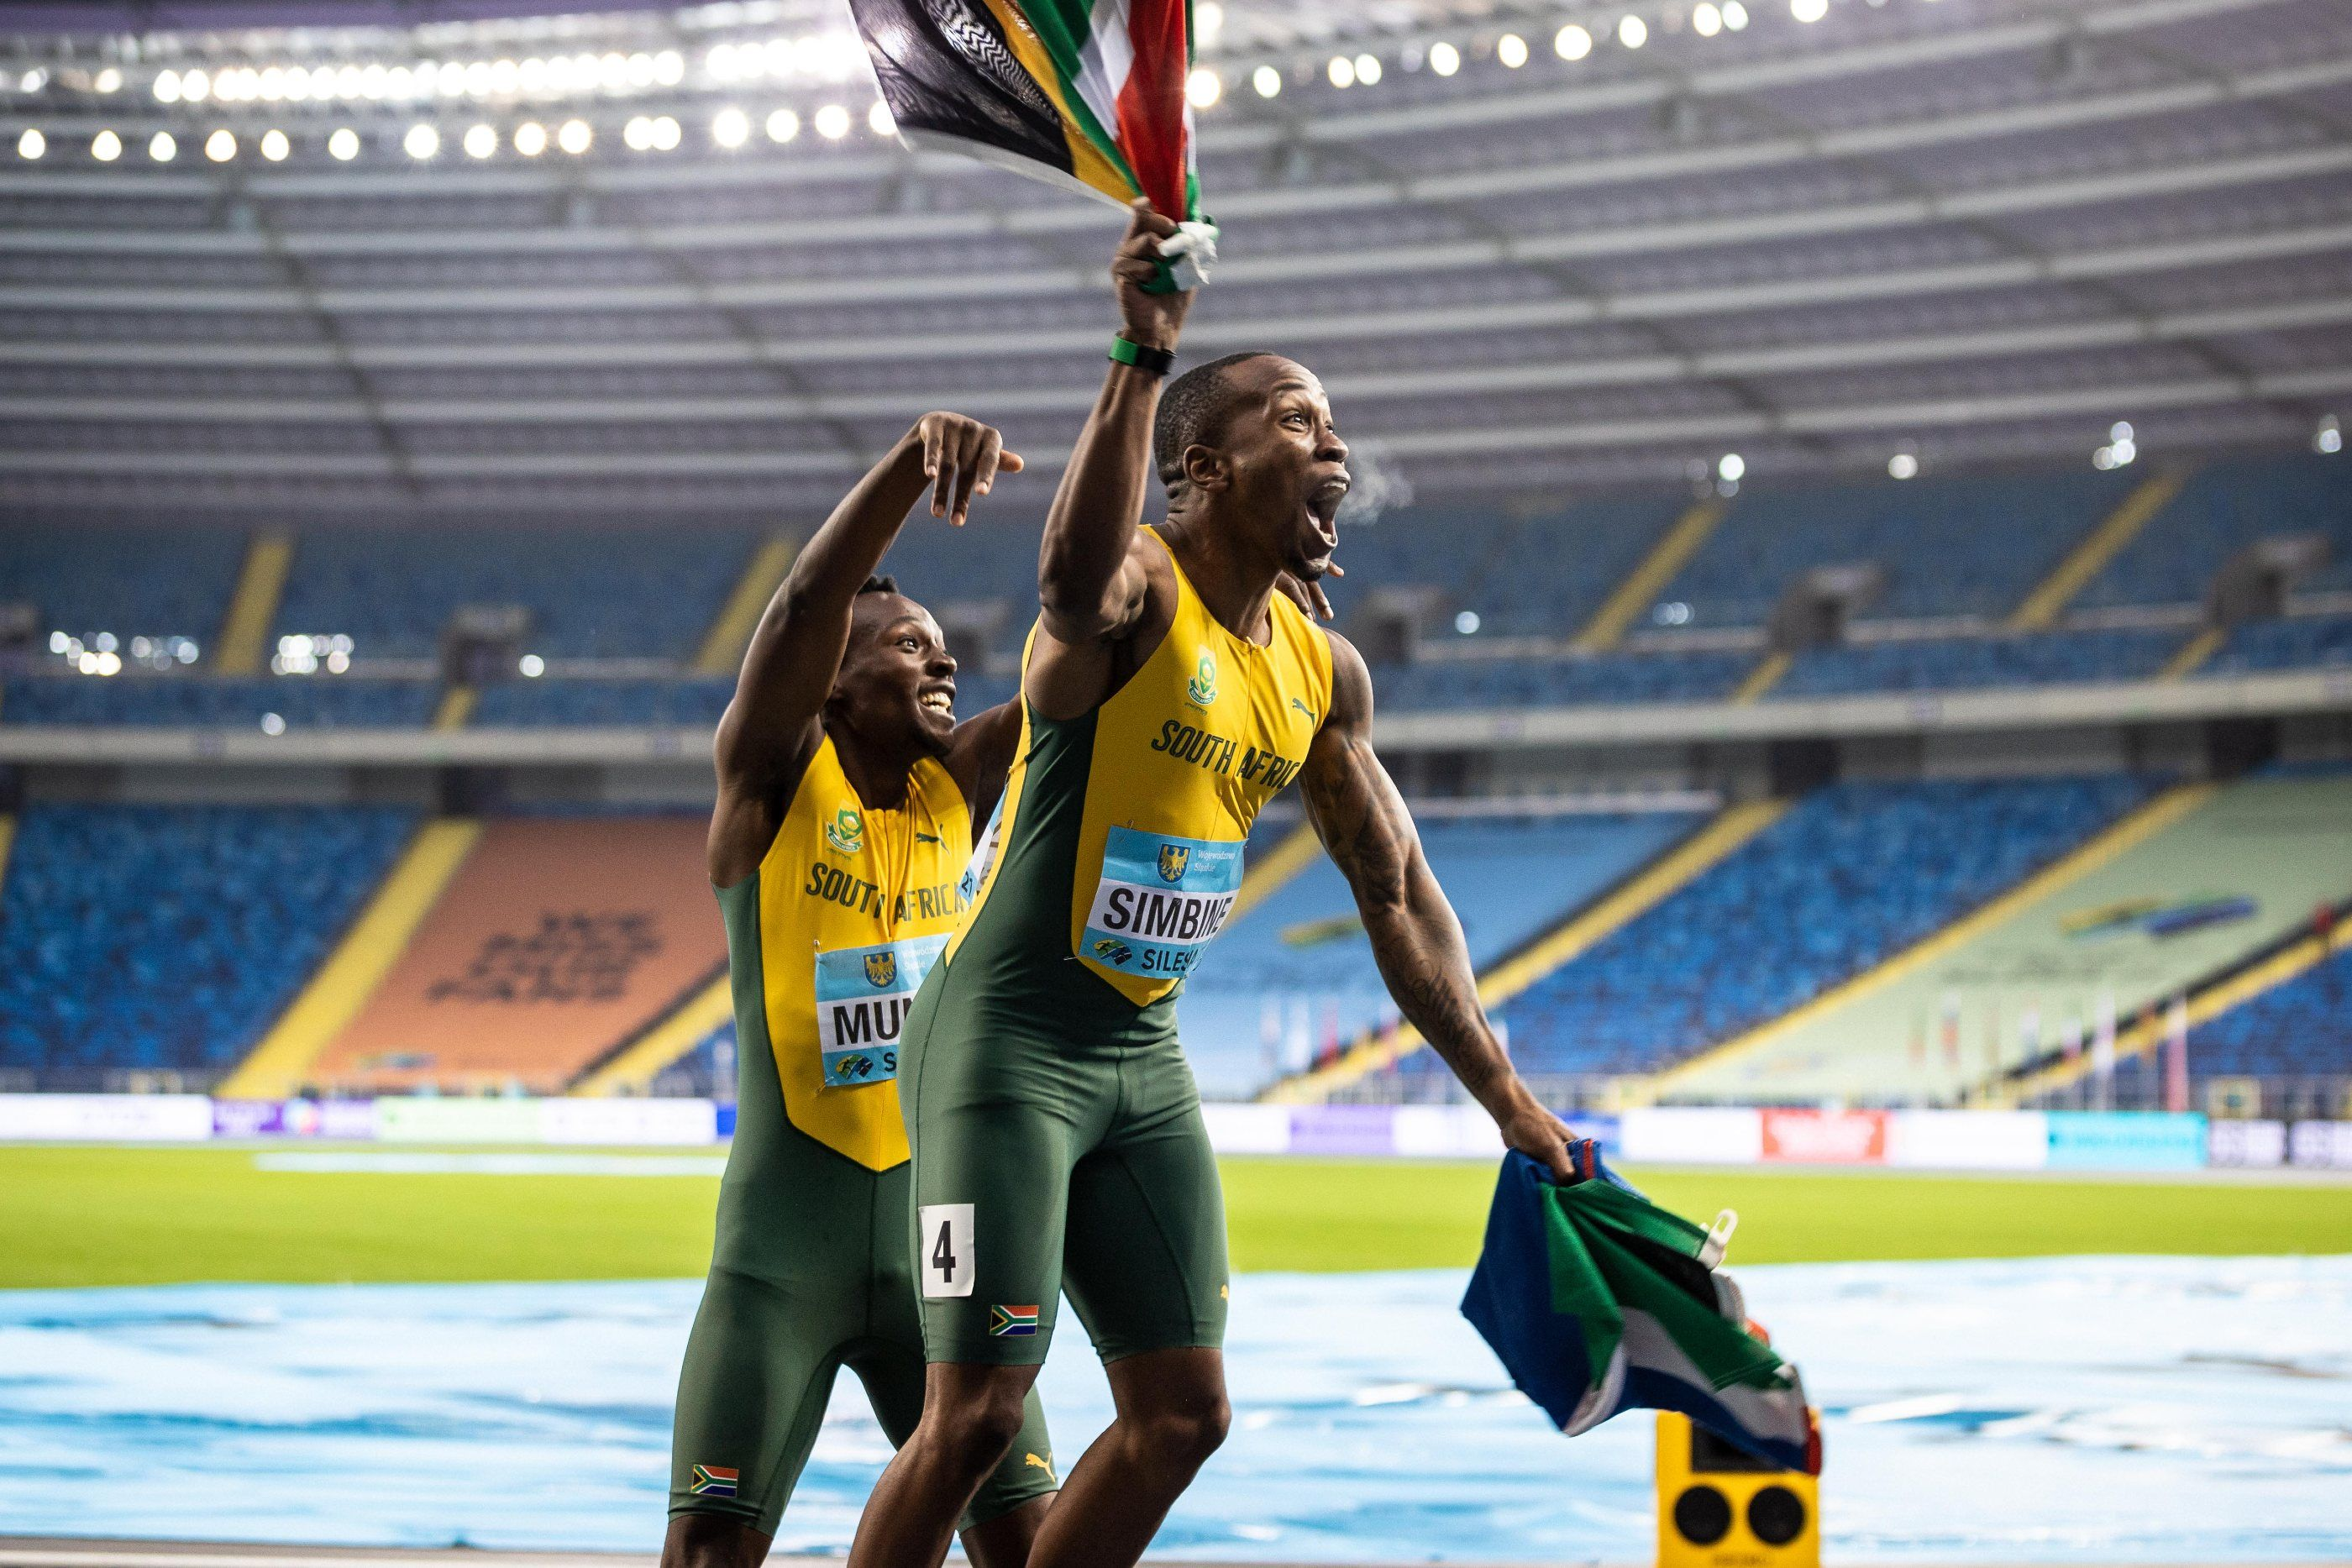 Boosted By World Relays South Africa S Simbine Is Focused On The Fast Road To Tokyo Feature Wre 21 World Athletics